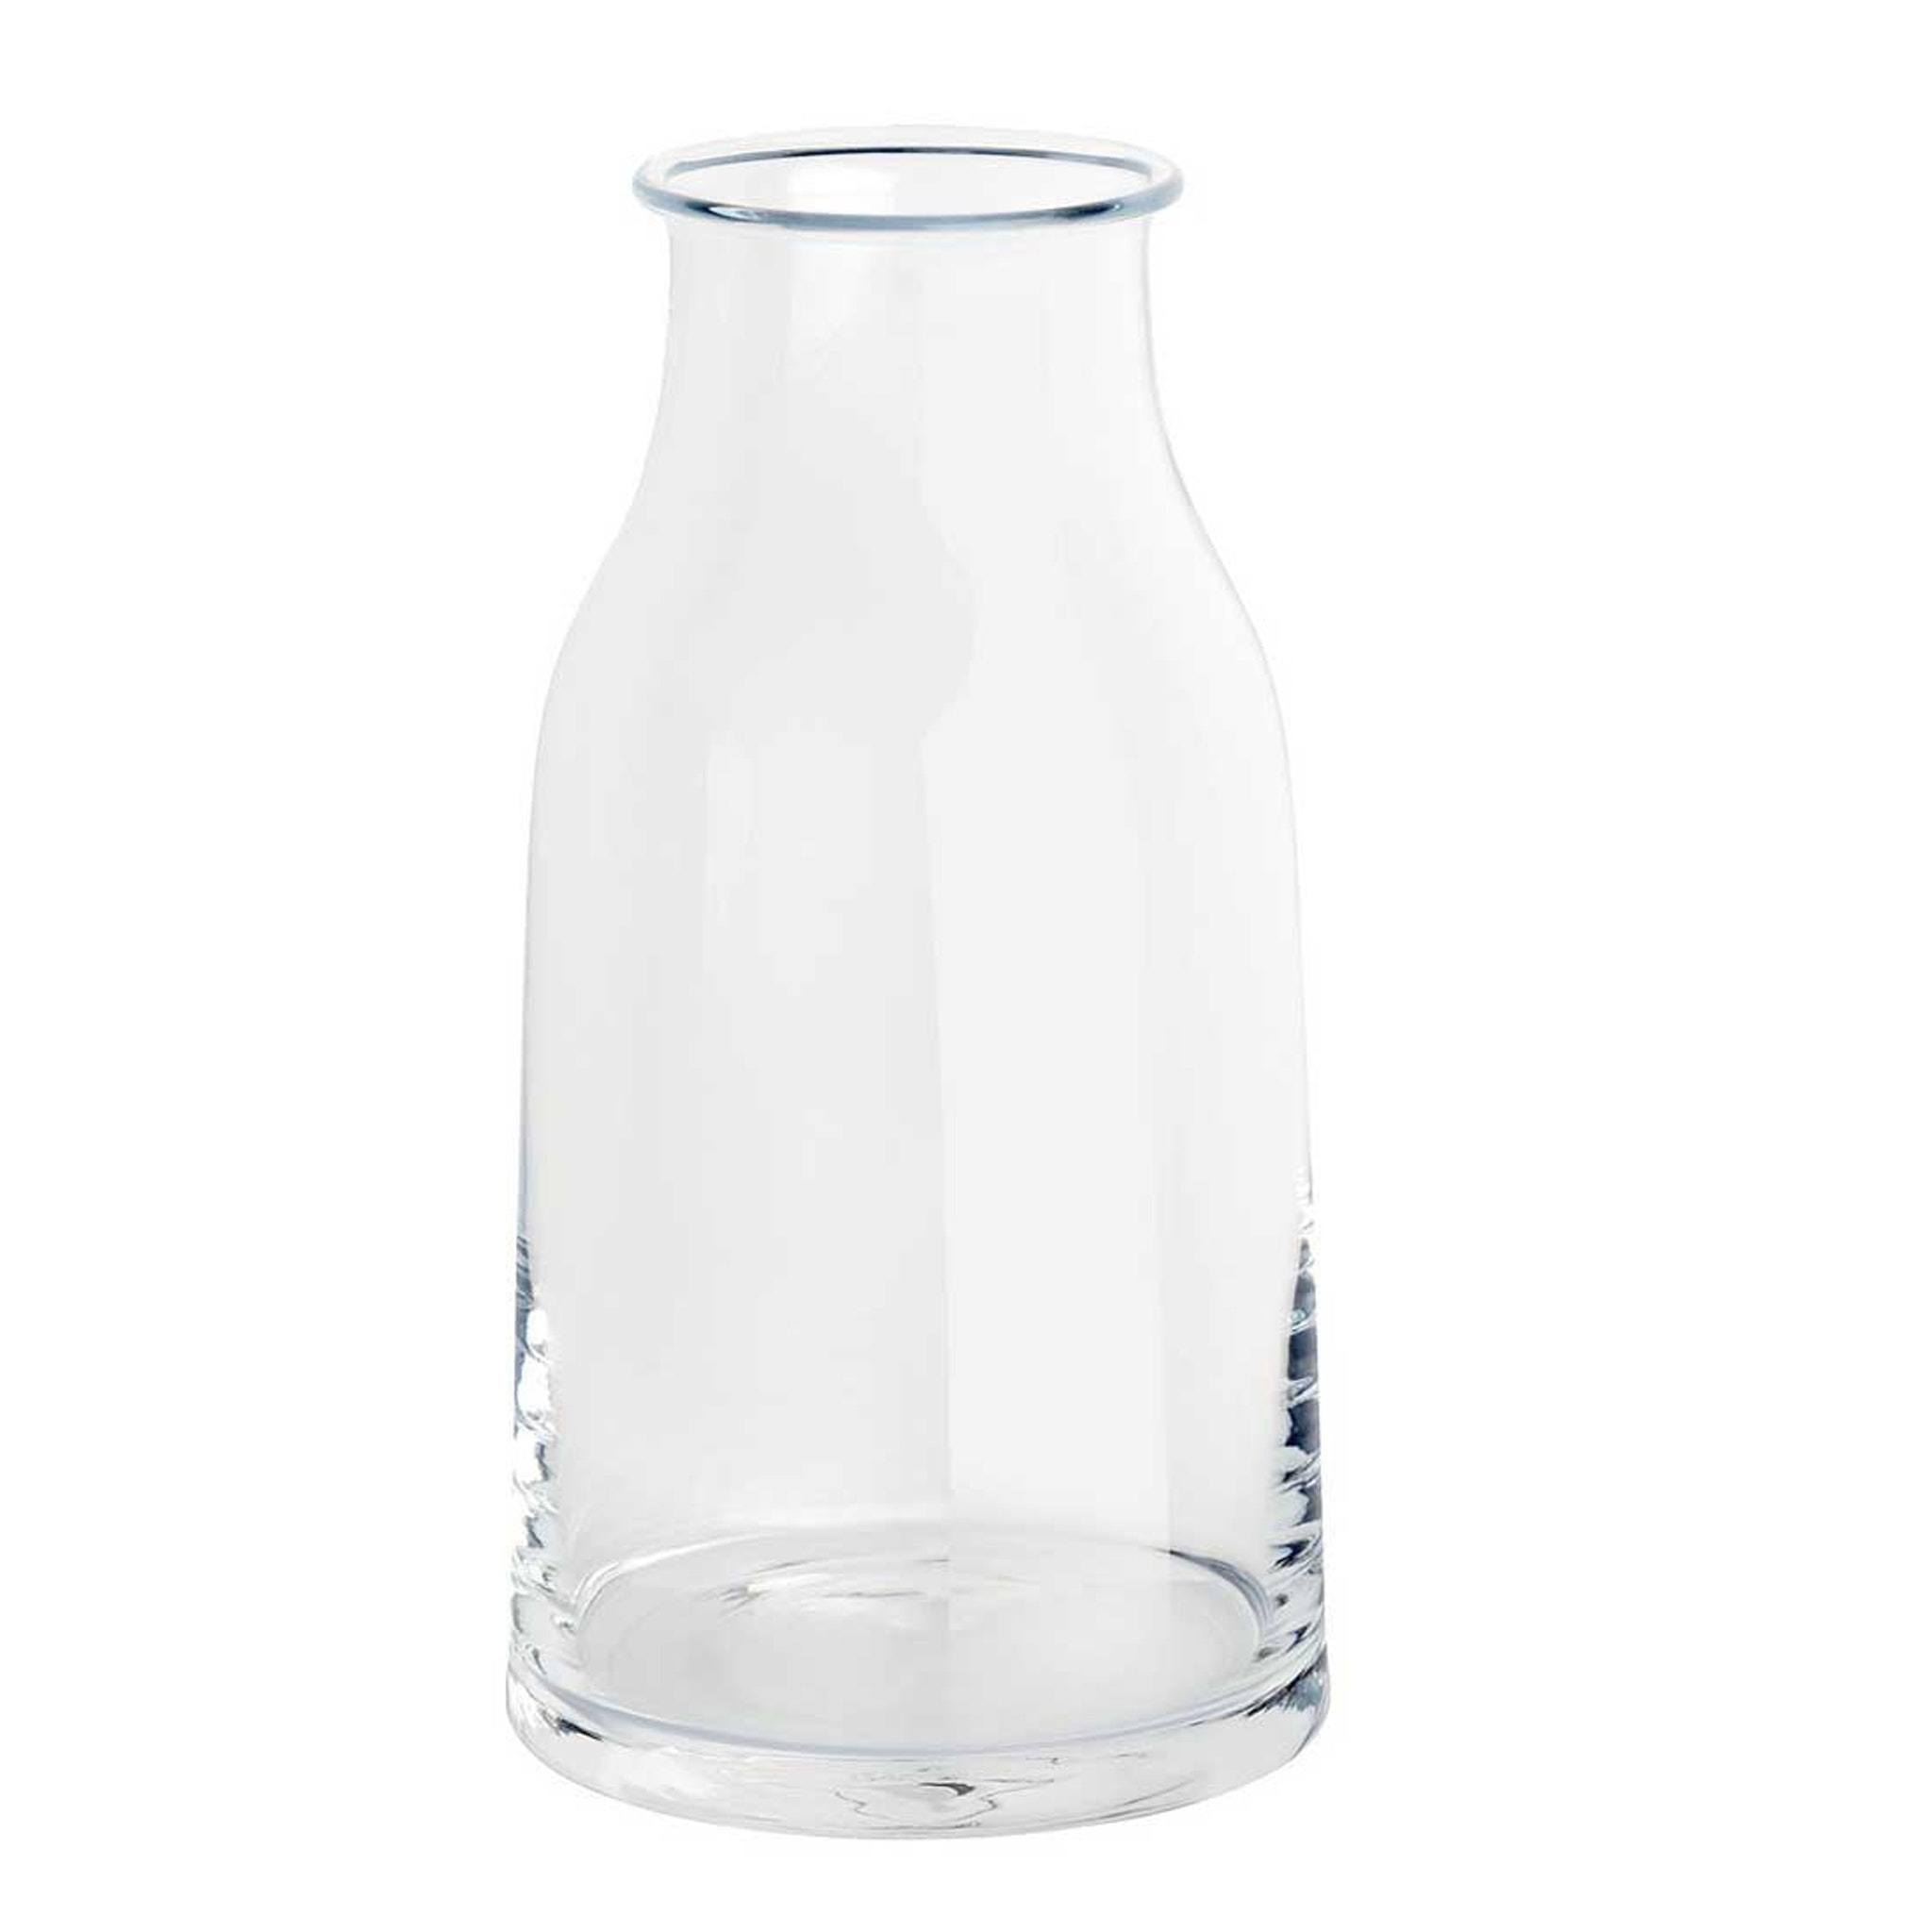 Tonale Carafe by David Chipperfield for Alessi